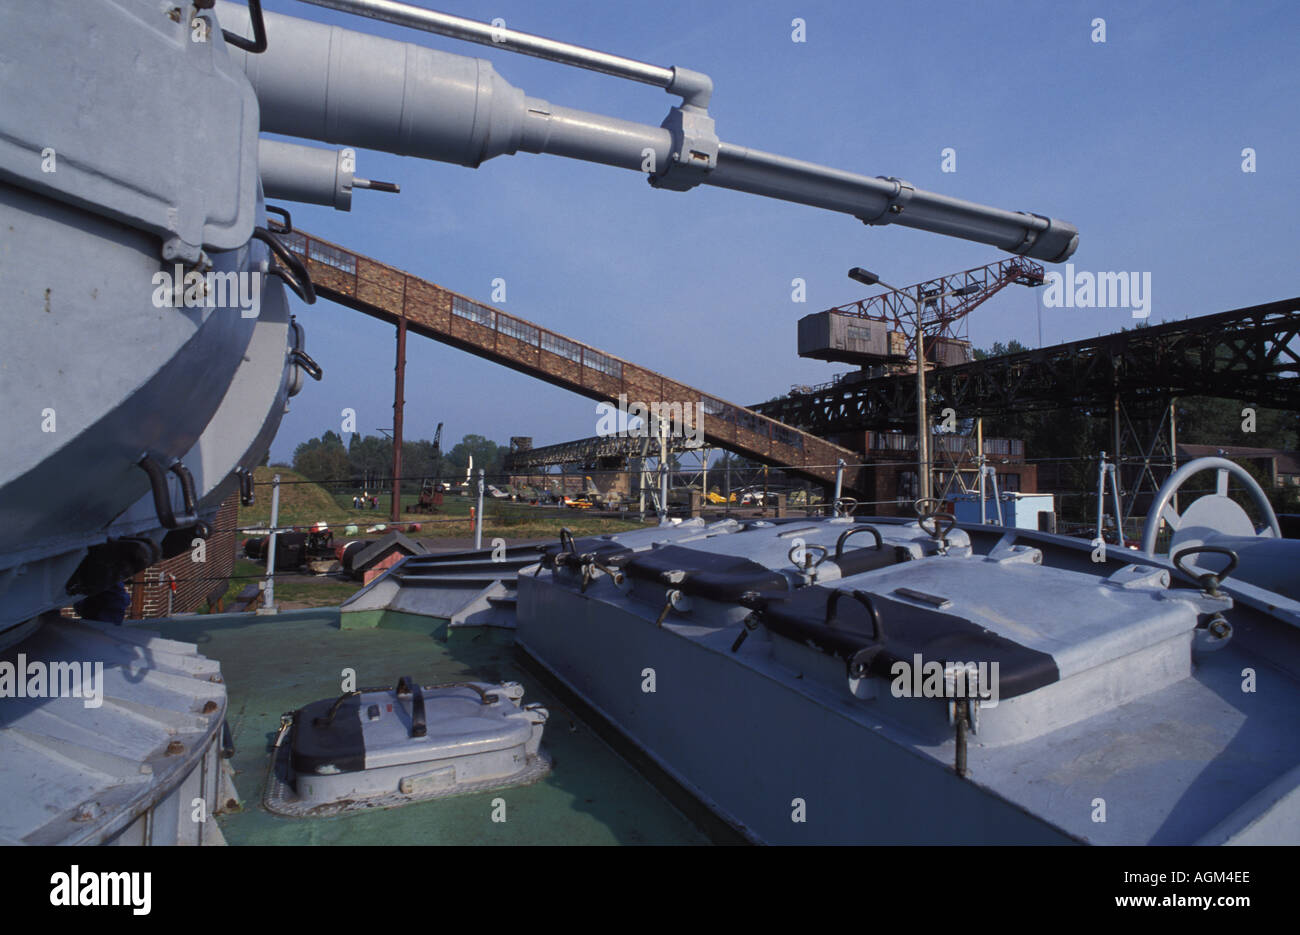 Warship, Historic Technical Information Center, Historisch technisches Informationszentrum, Museum, Peenemuende, Usedom Island - Stock Image